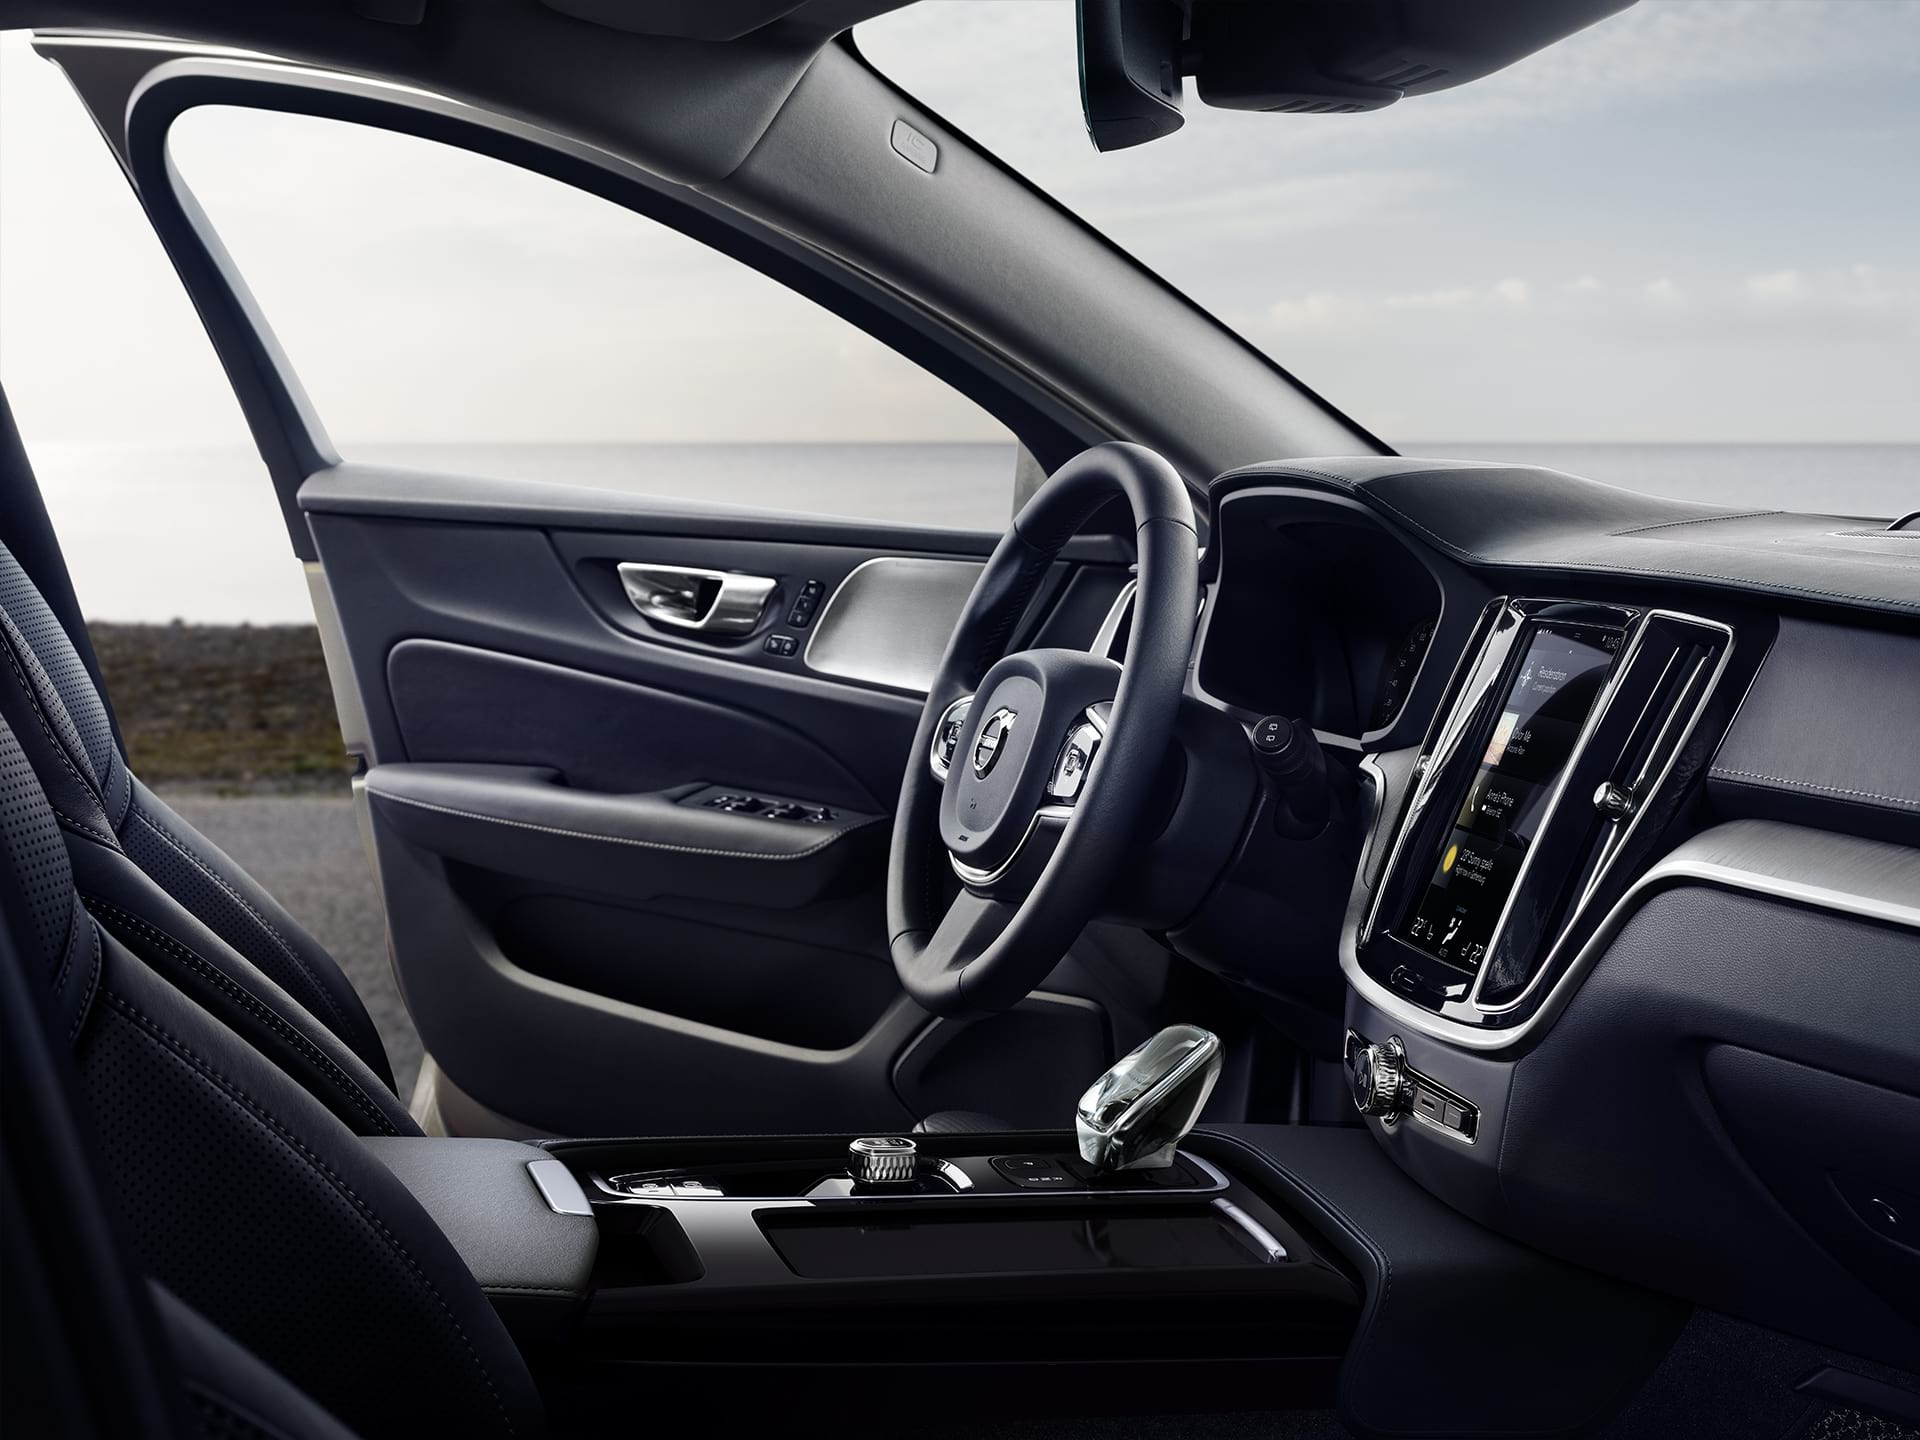 Front interior of a V60, the driver door is open.